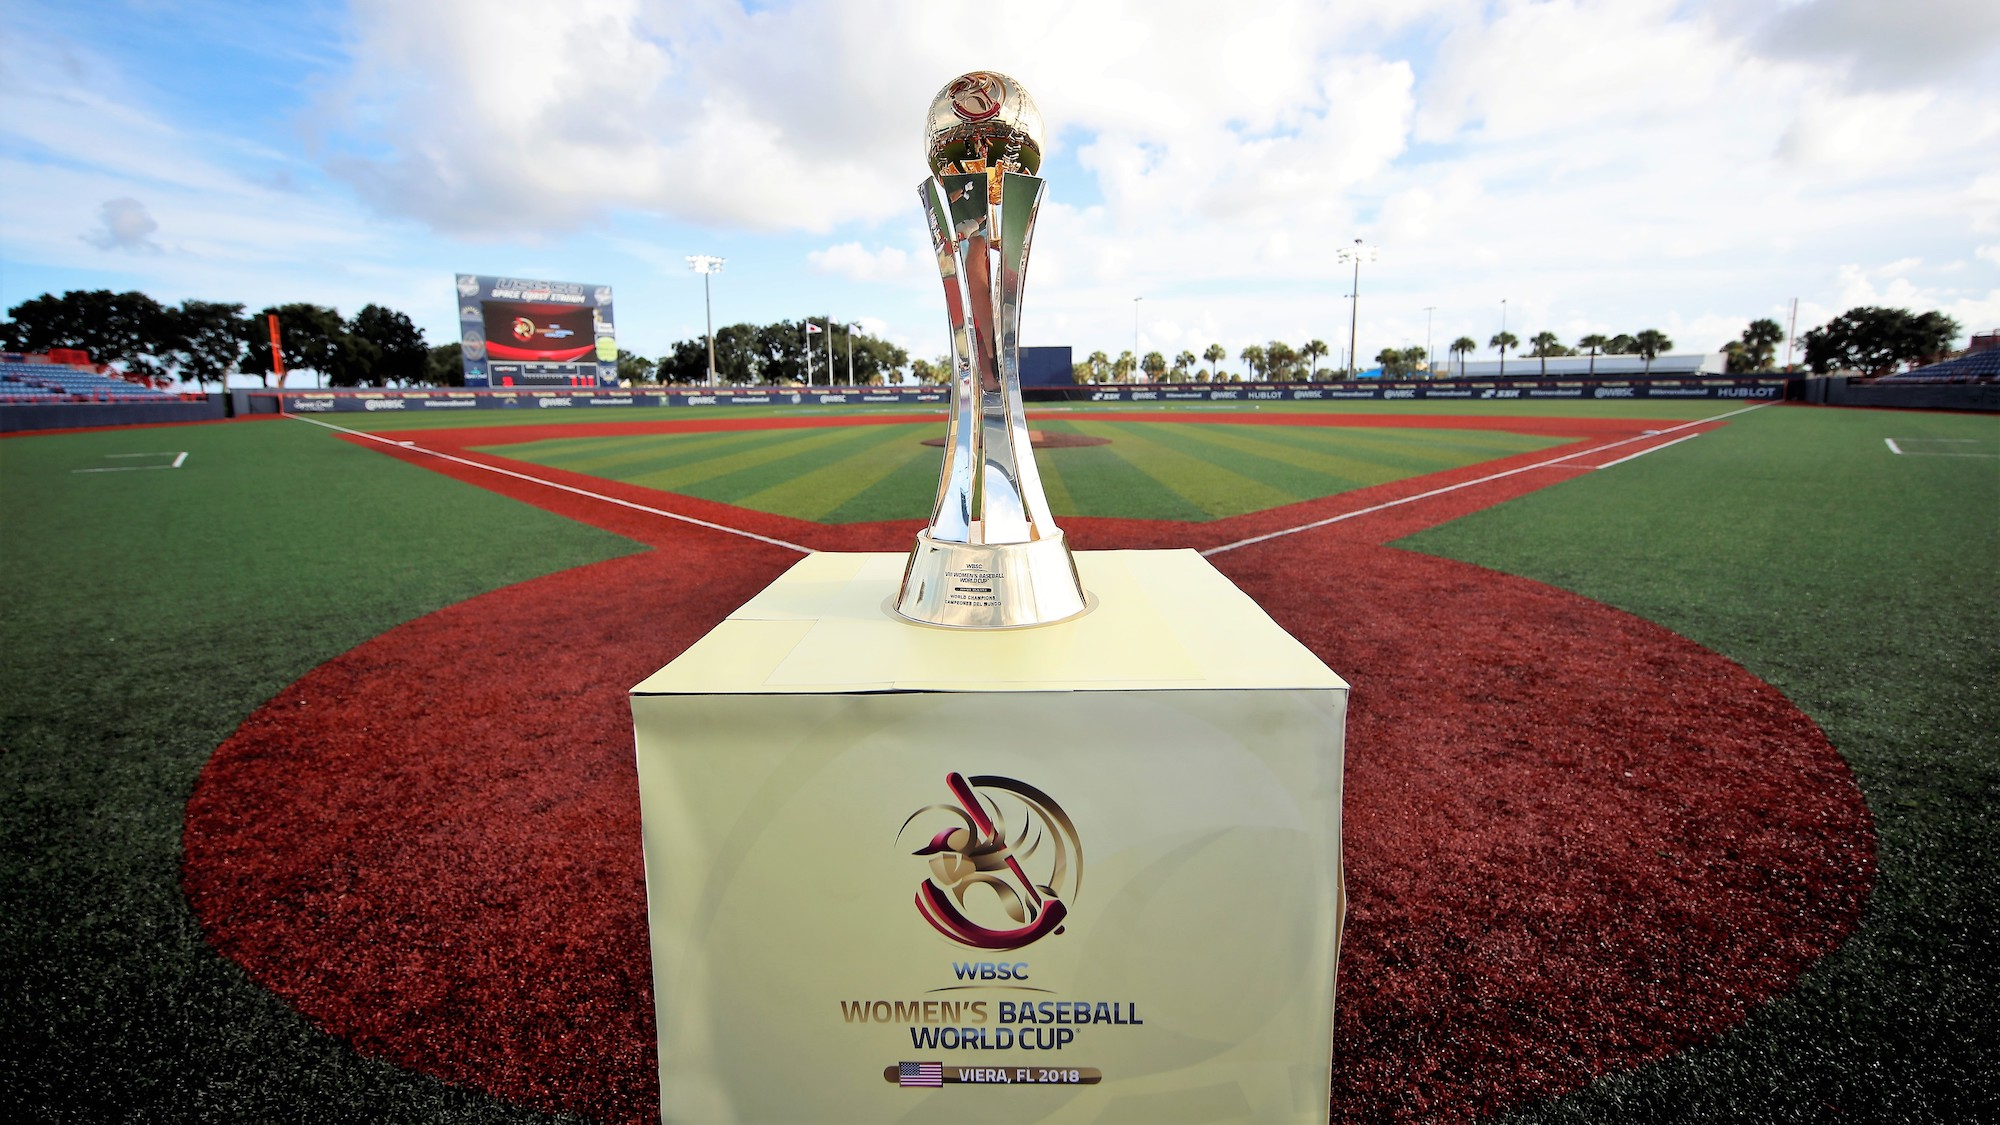 2020 Women's Baseball World Cup awarded to Monterrey